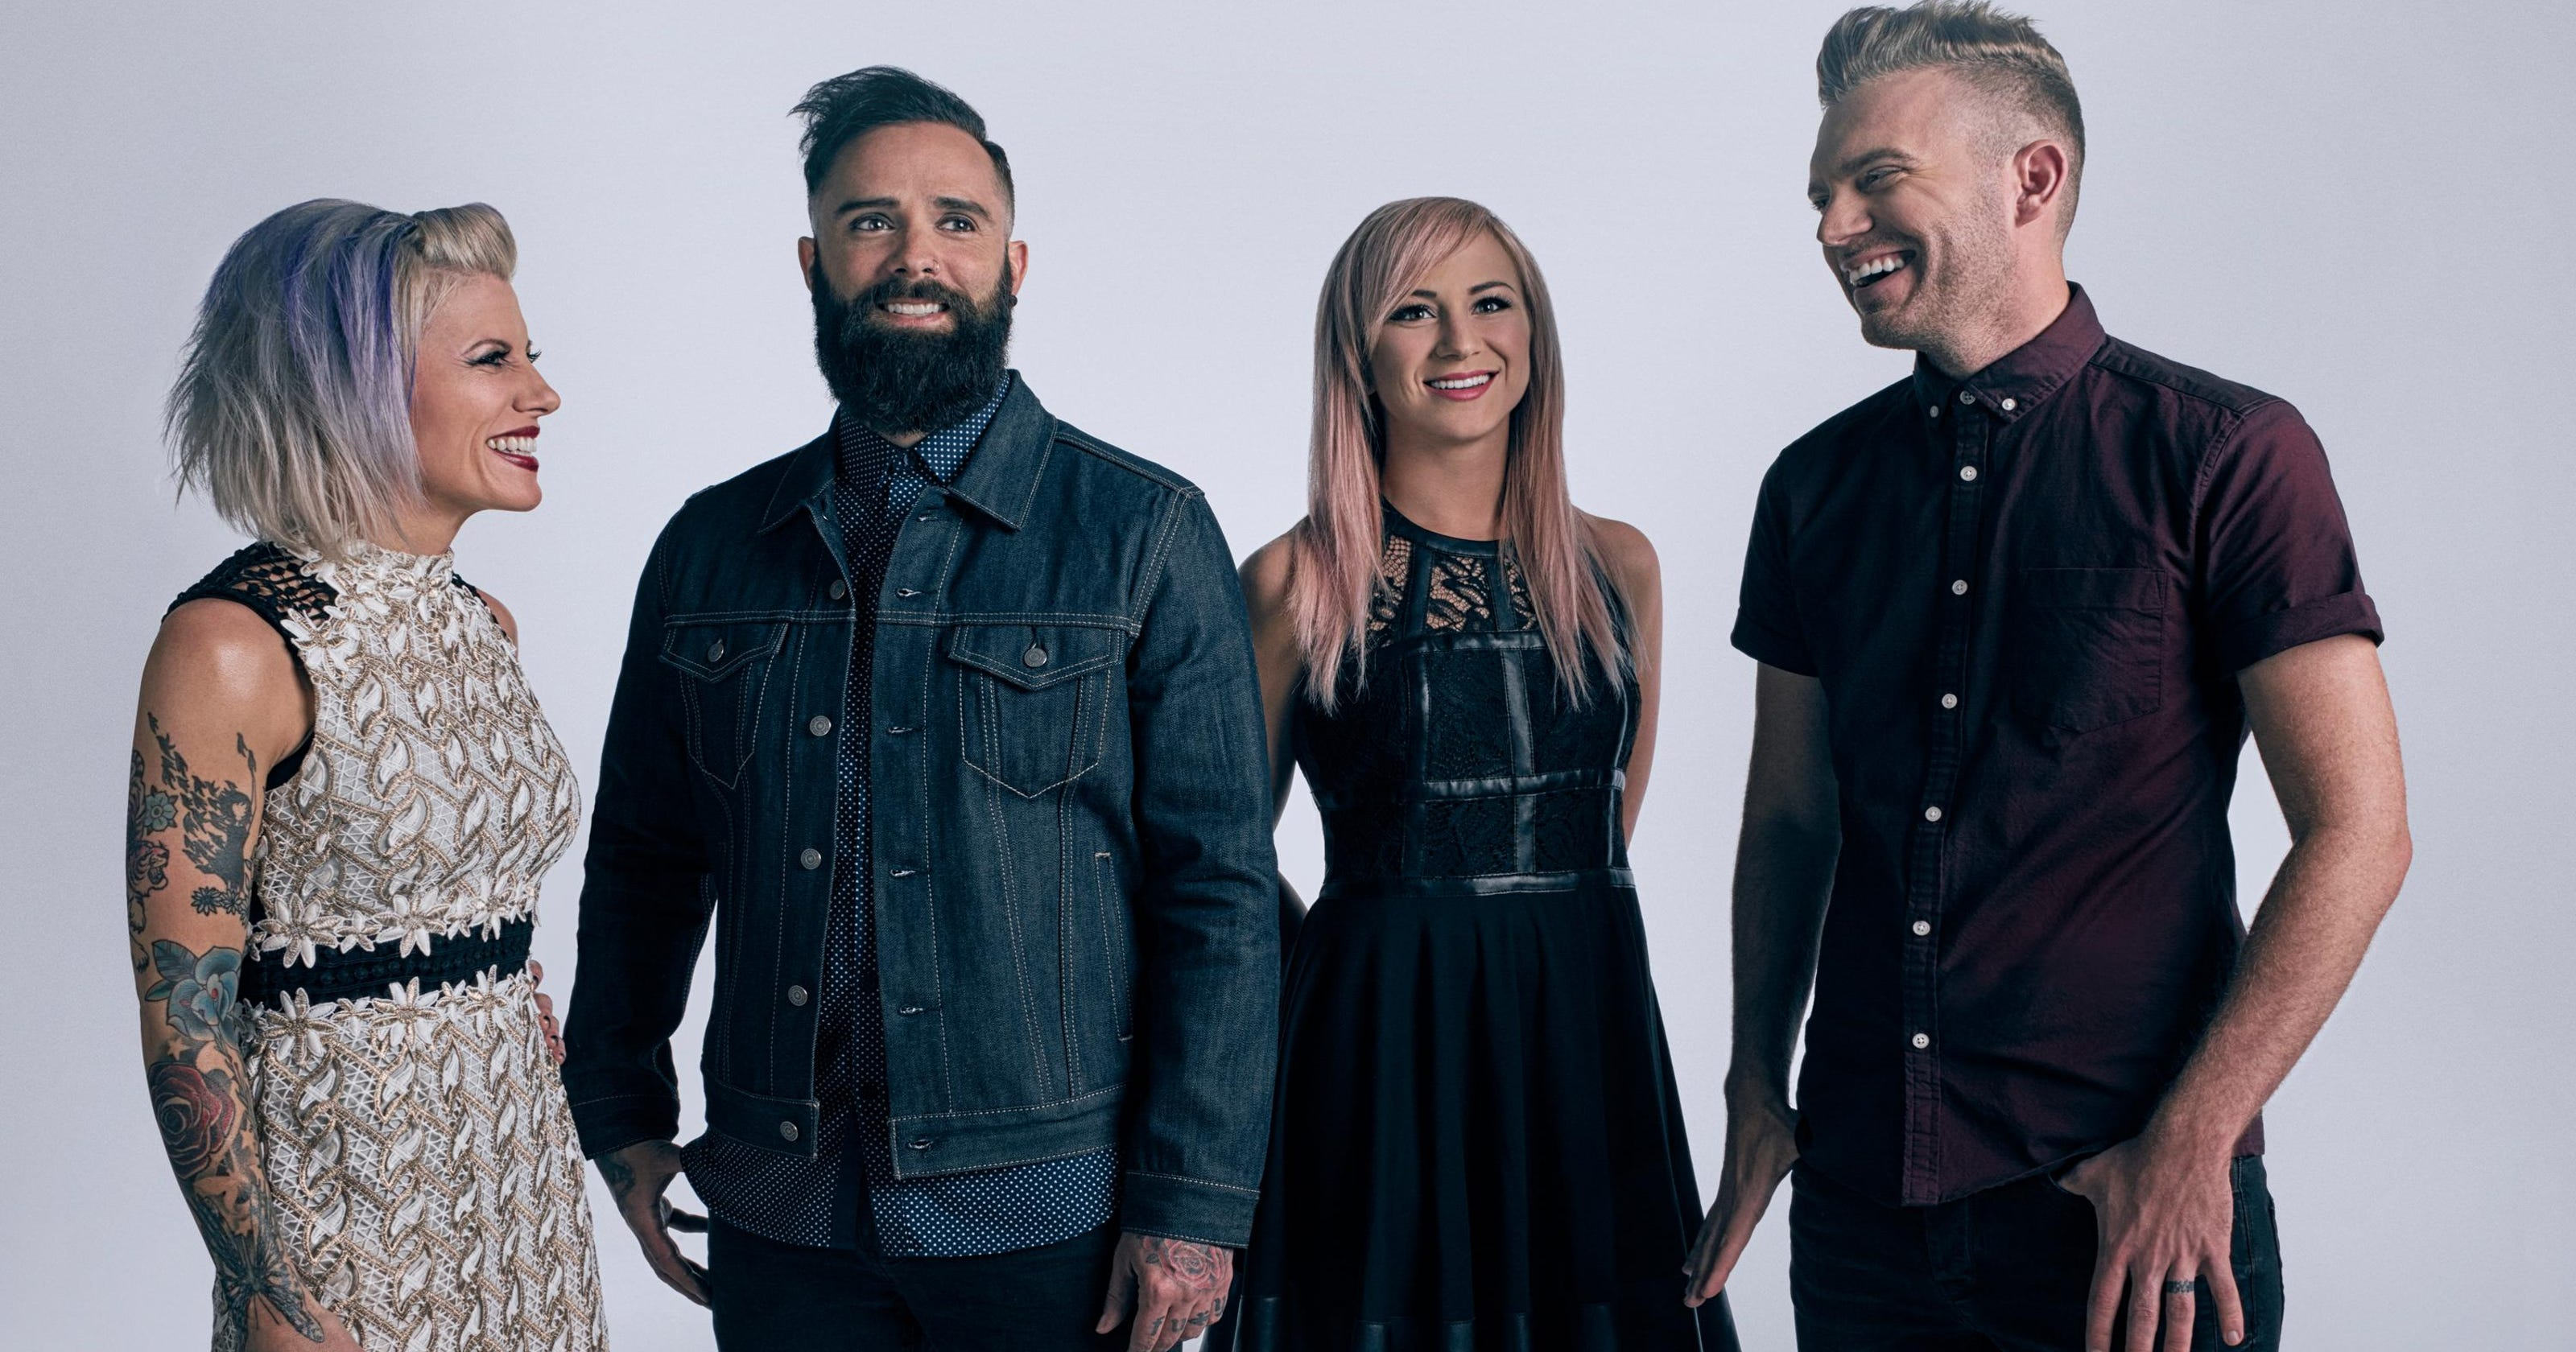 Skillet is ready to rock Des Moines' Winter Jam Spectacular